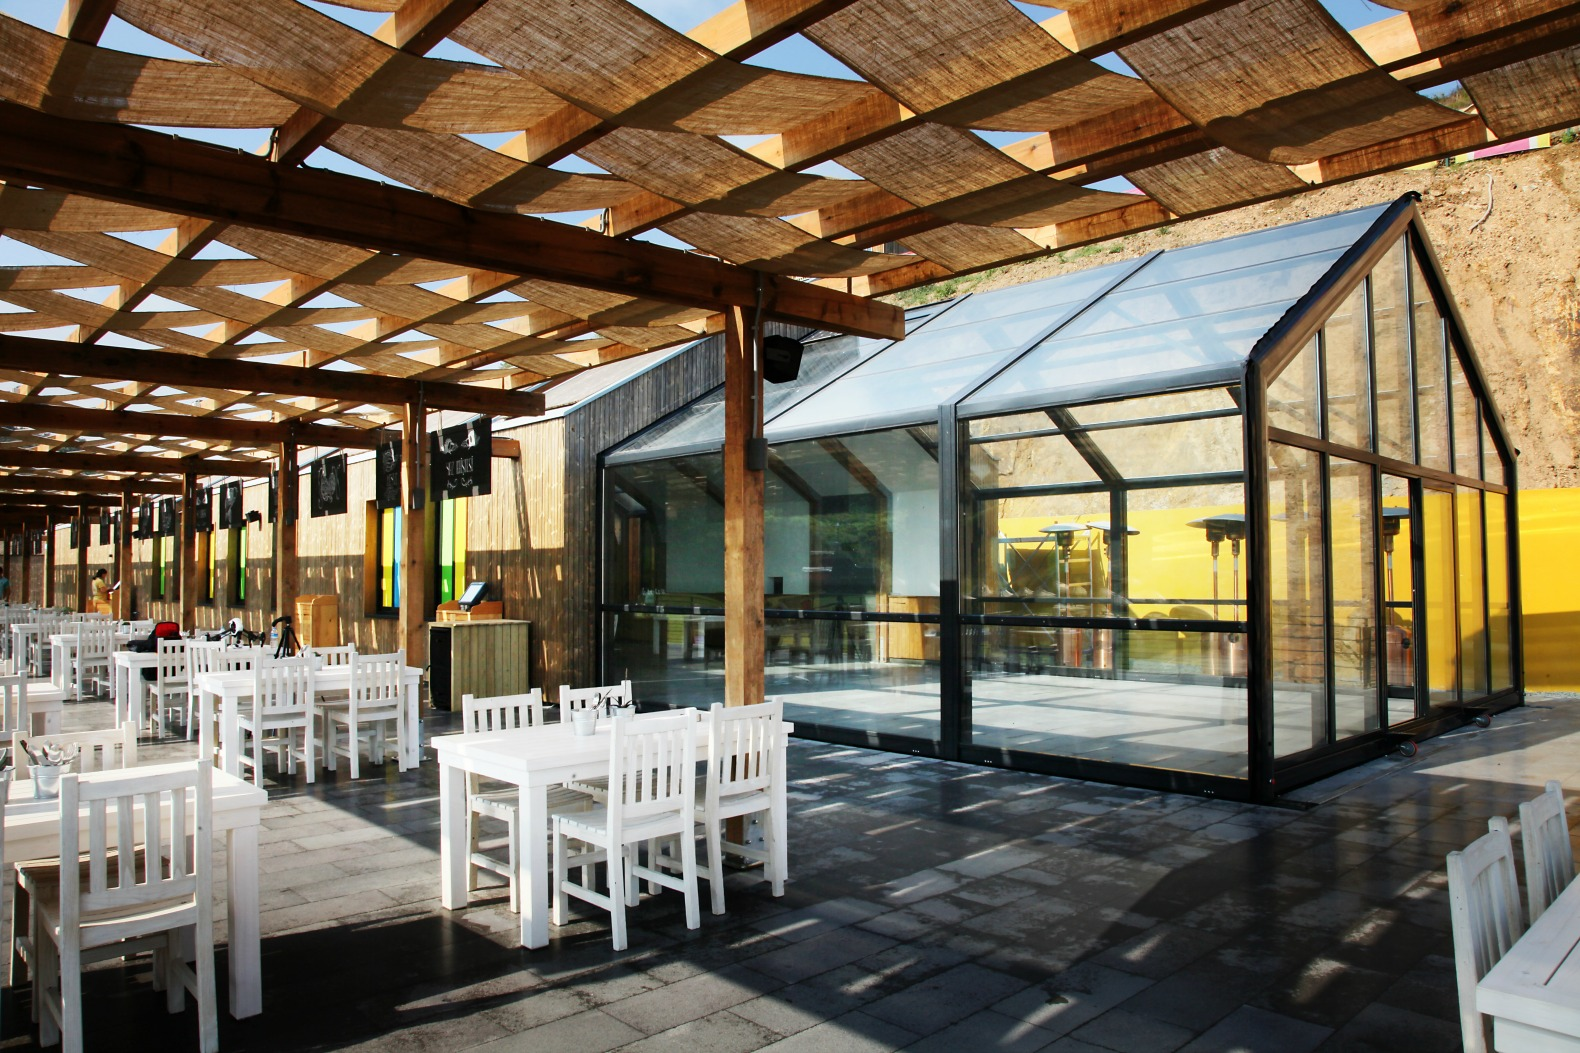 Retractable Restaurant Addition Provides Flexible Space